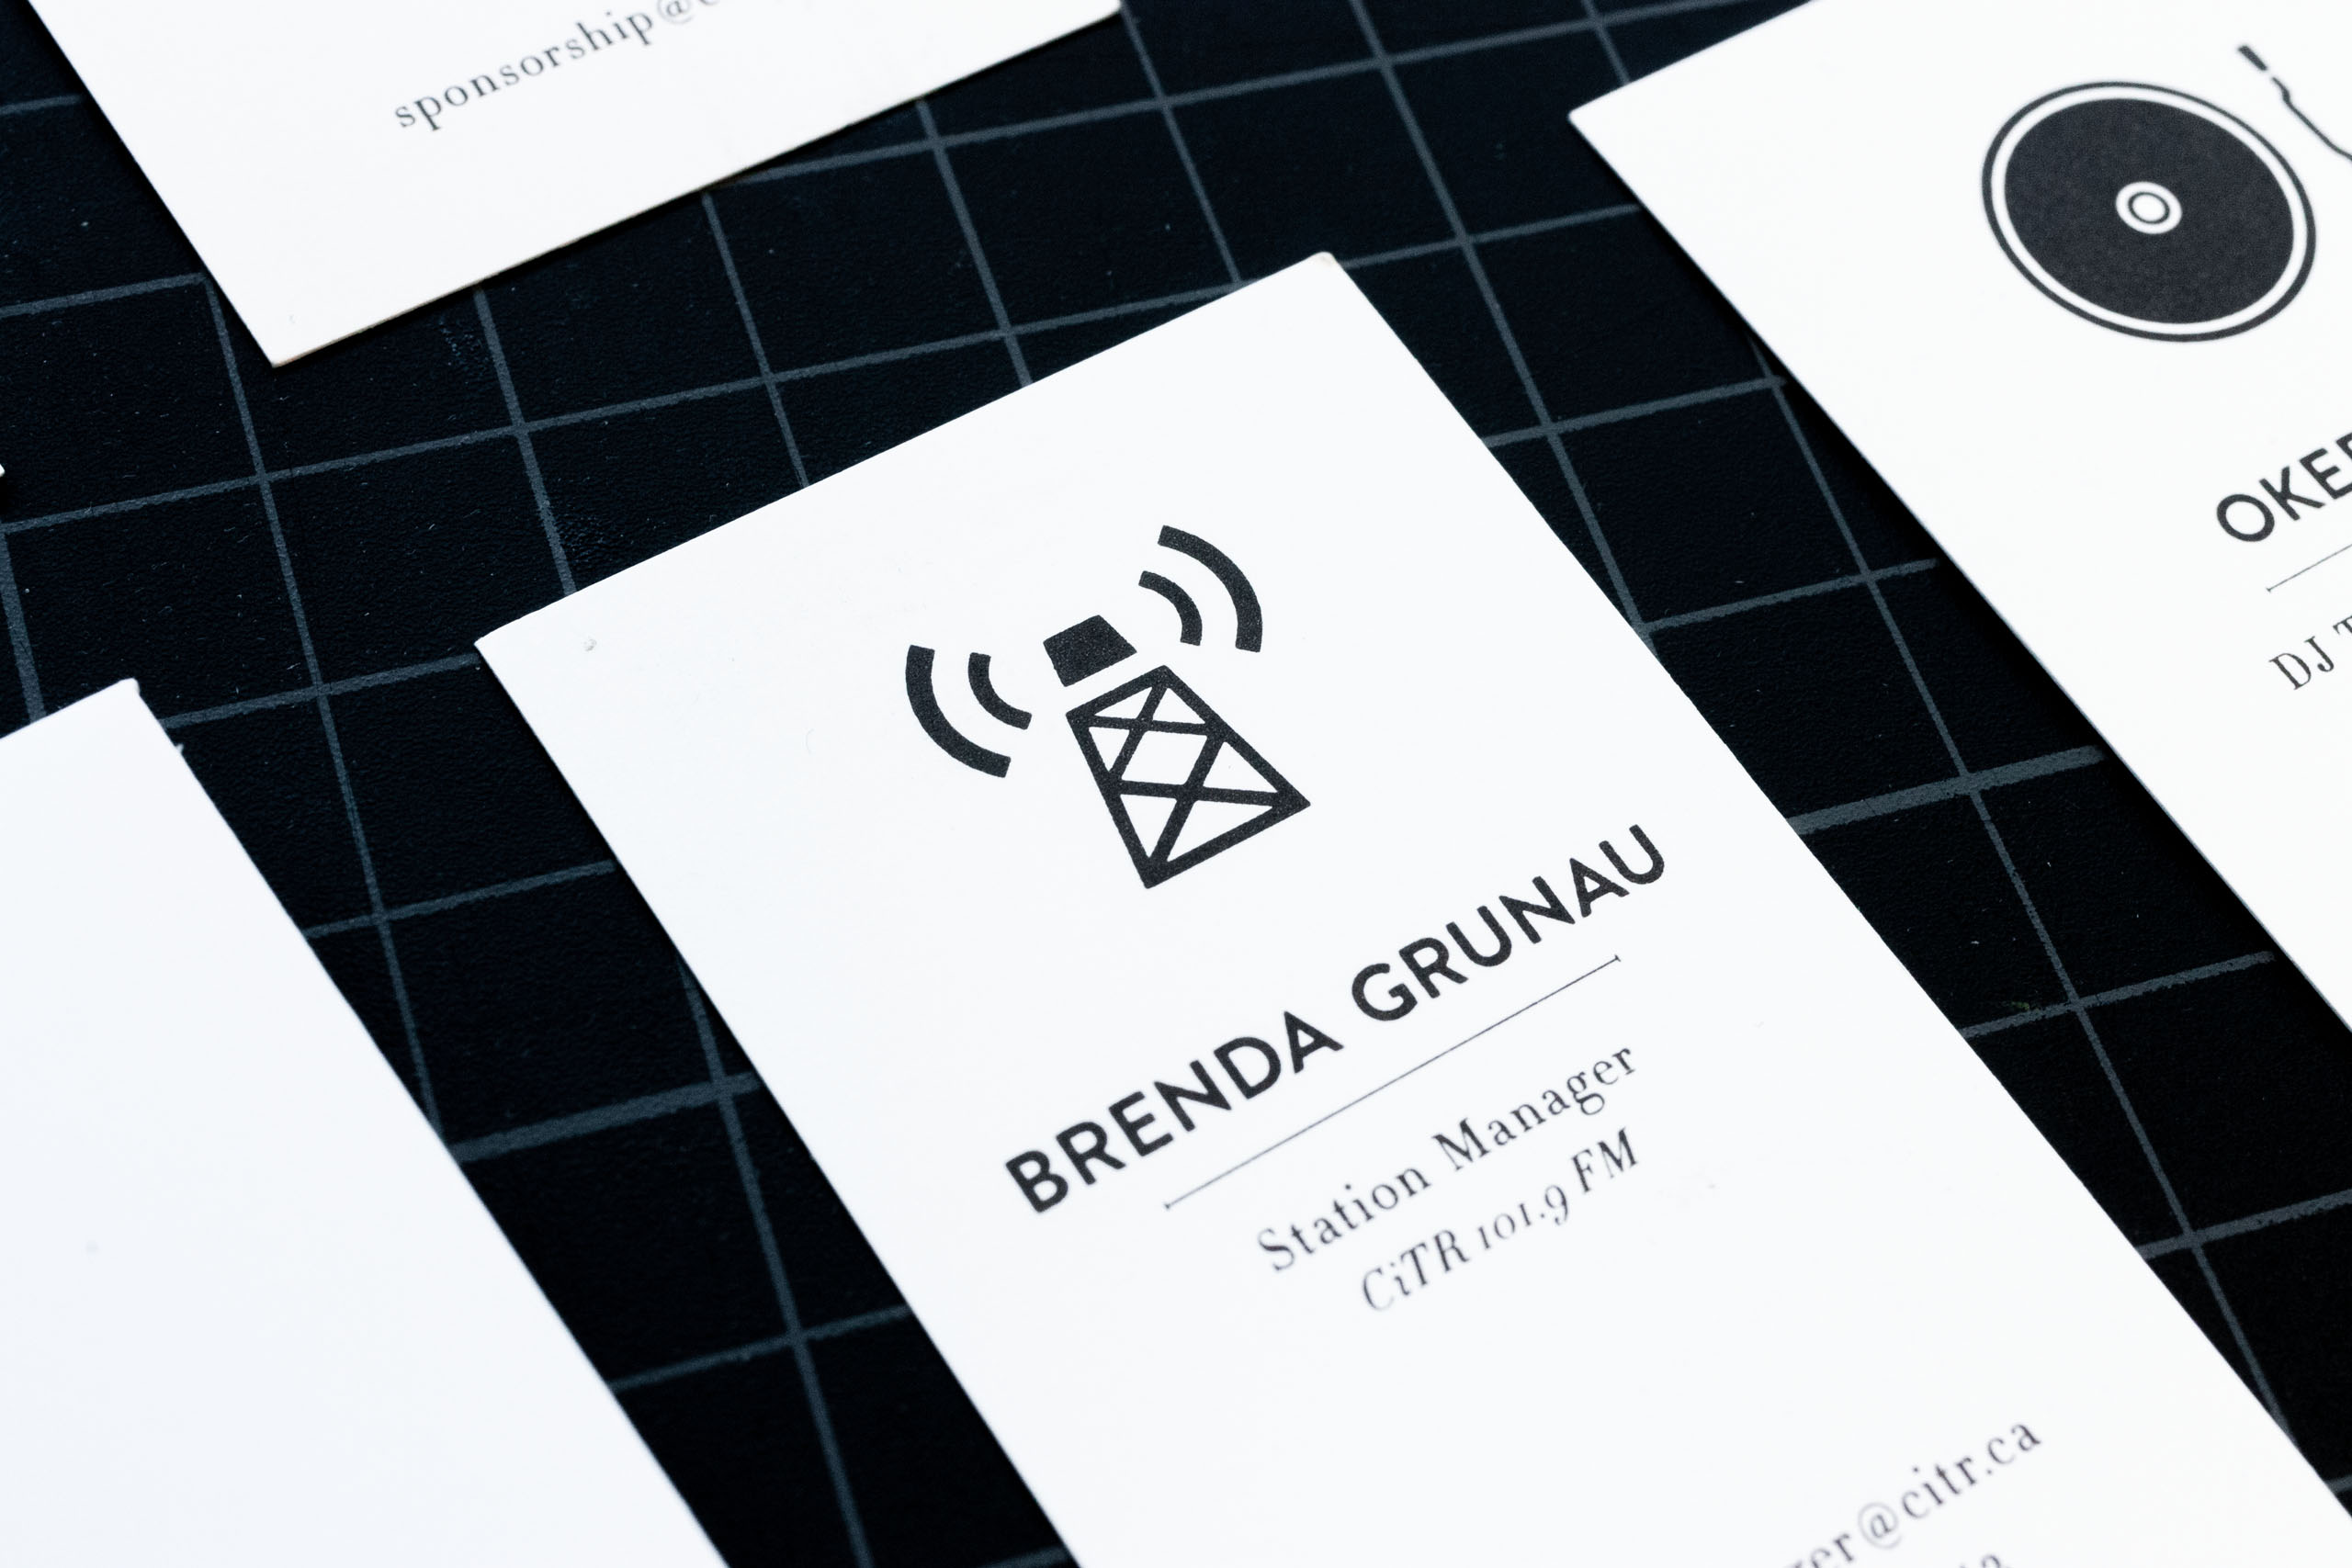 Close up of CiTR Radio Station Manager business card with an illustration of a radio tower — by Dima Yagnyuk.